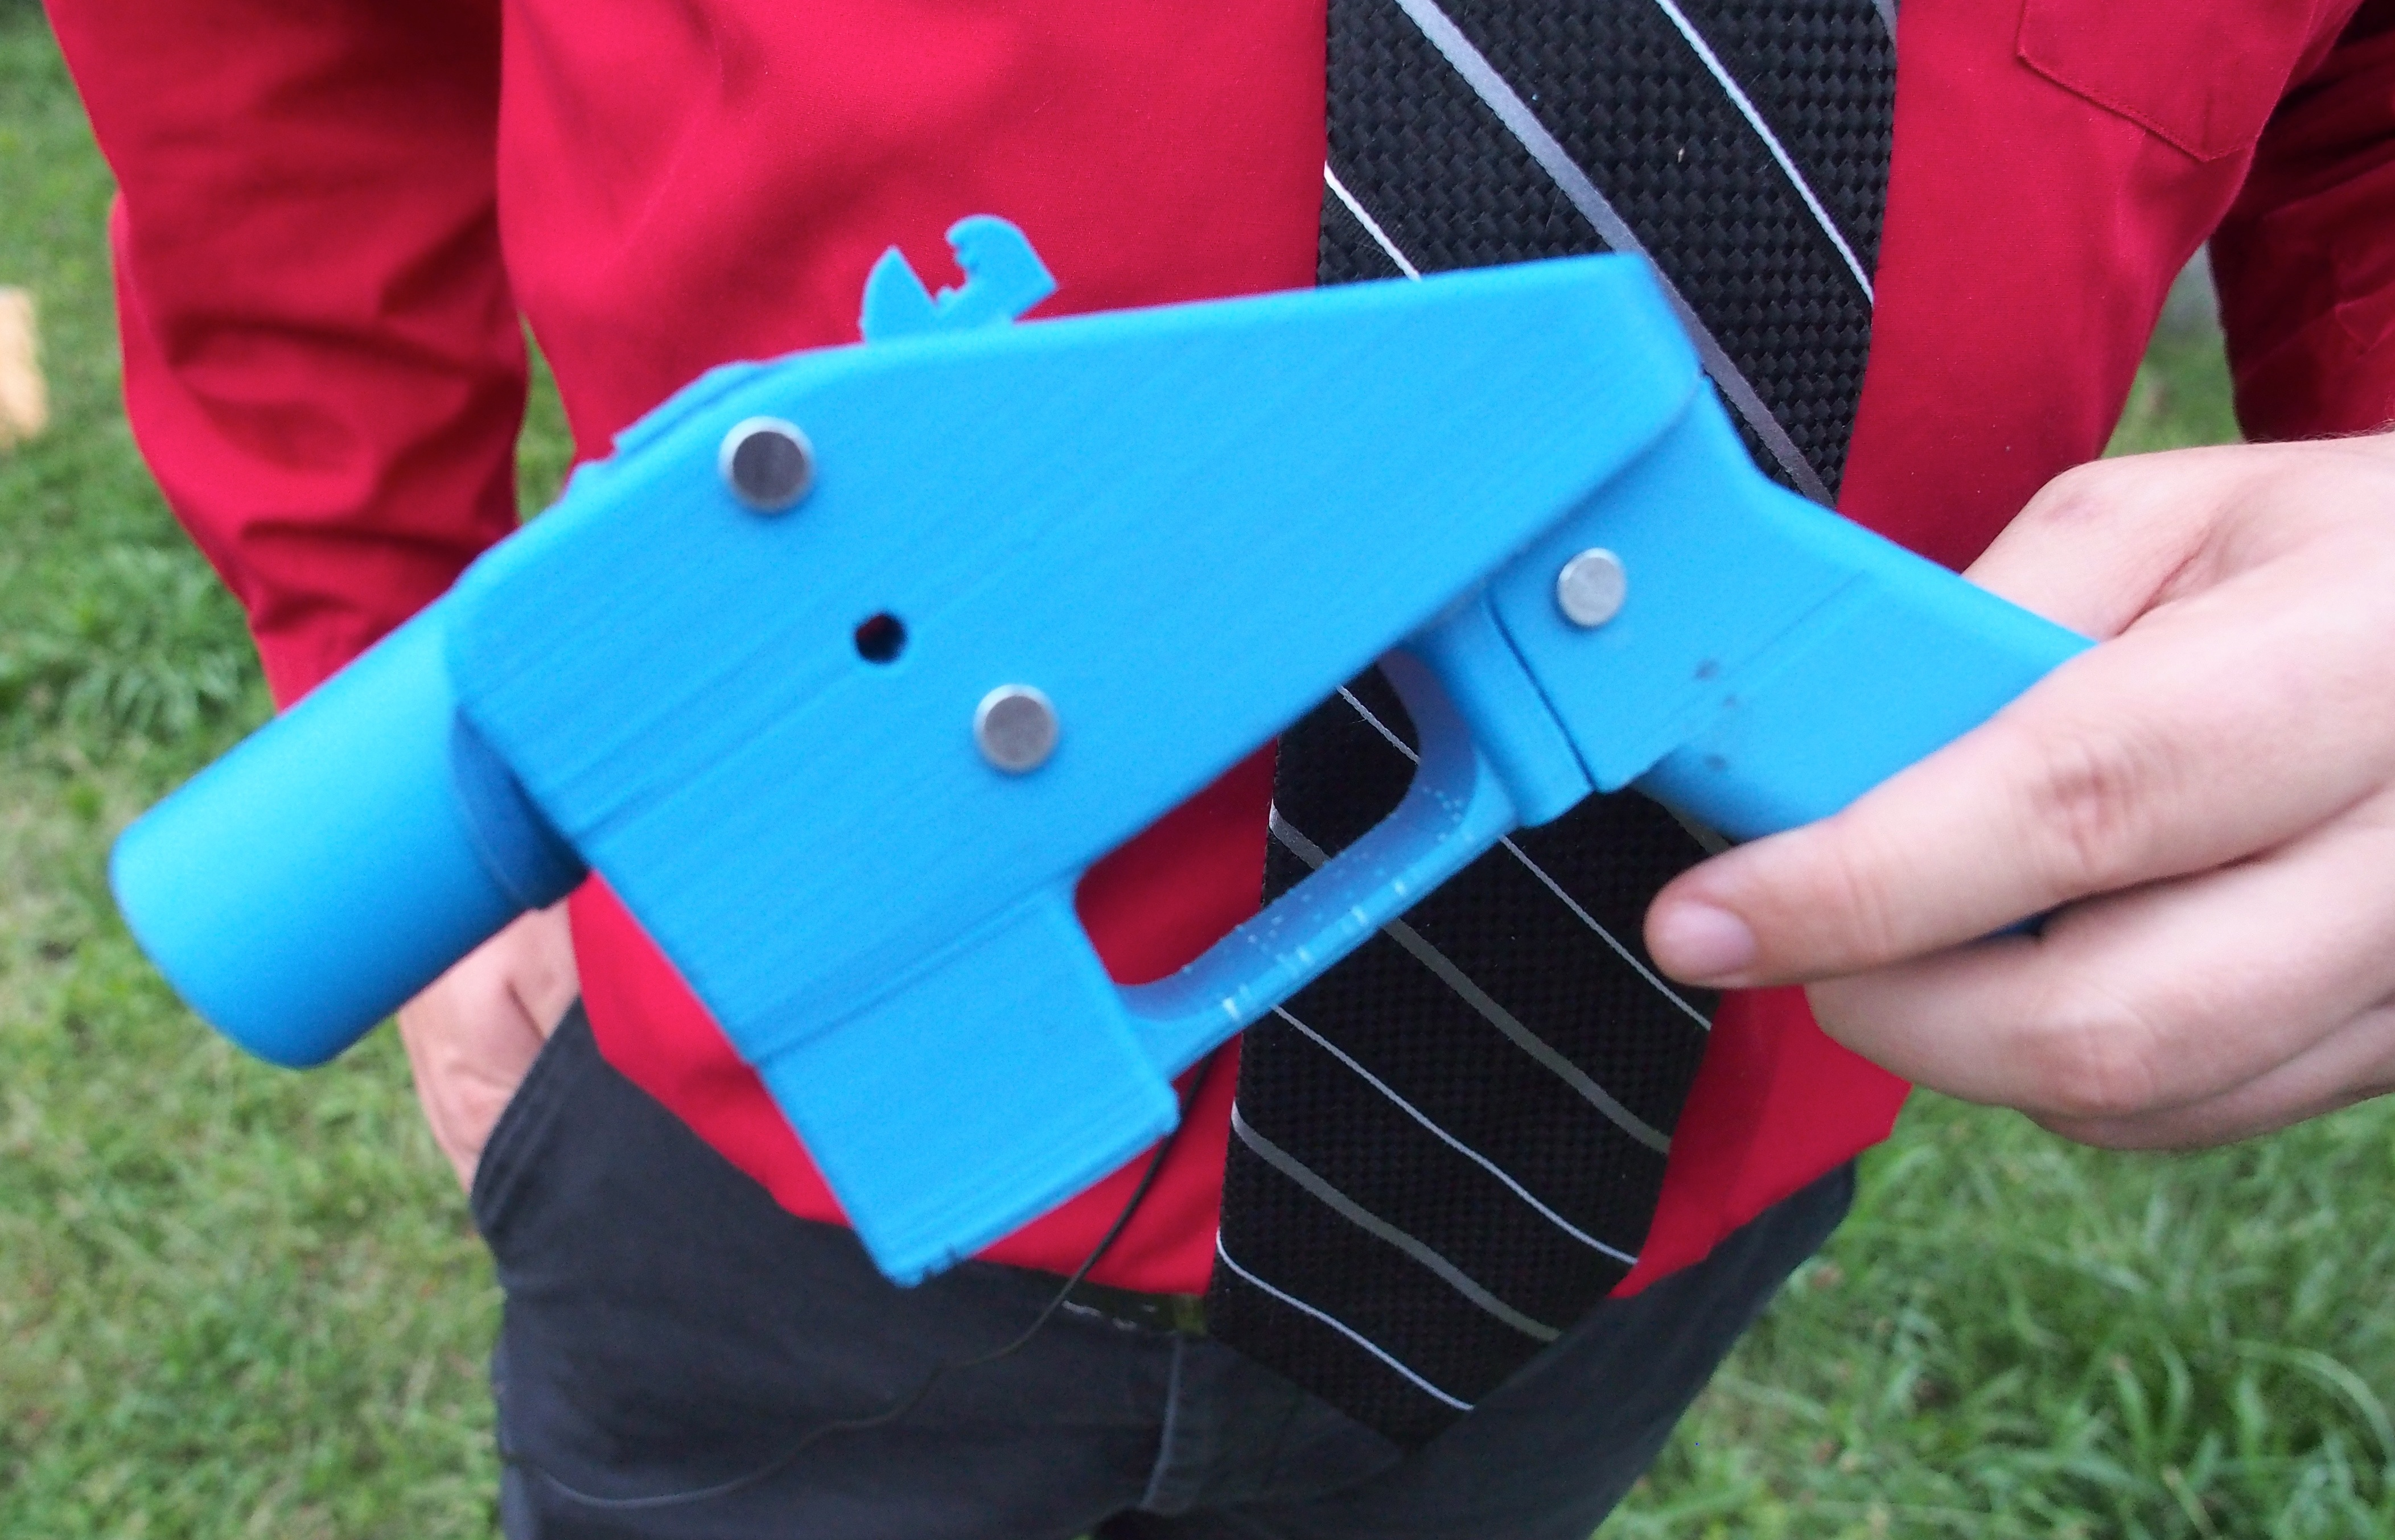 Facebook is blocking links to sites that share 3D-printed gun blueprints.